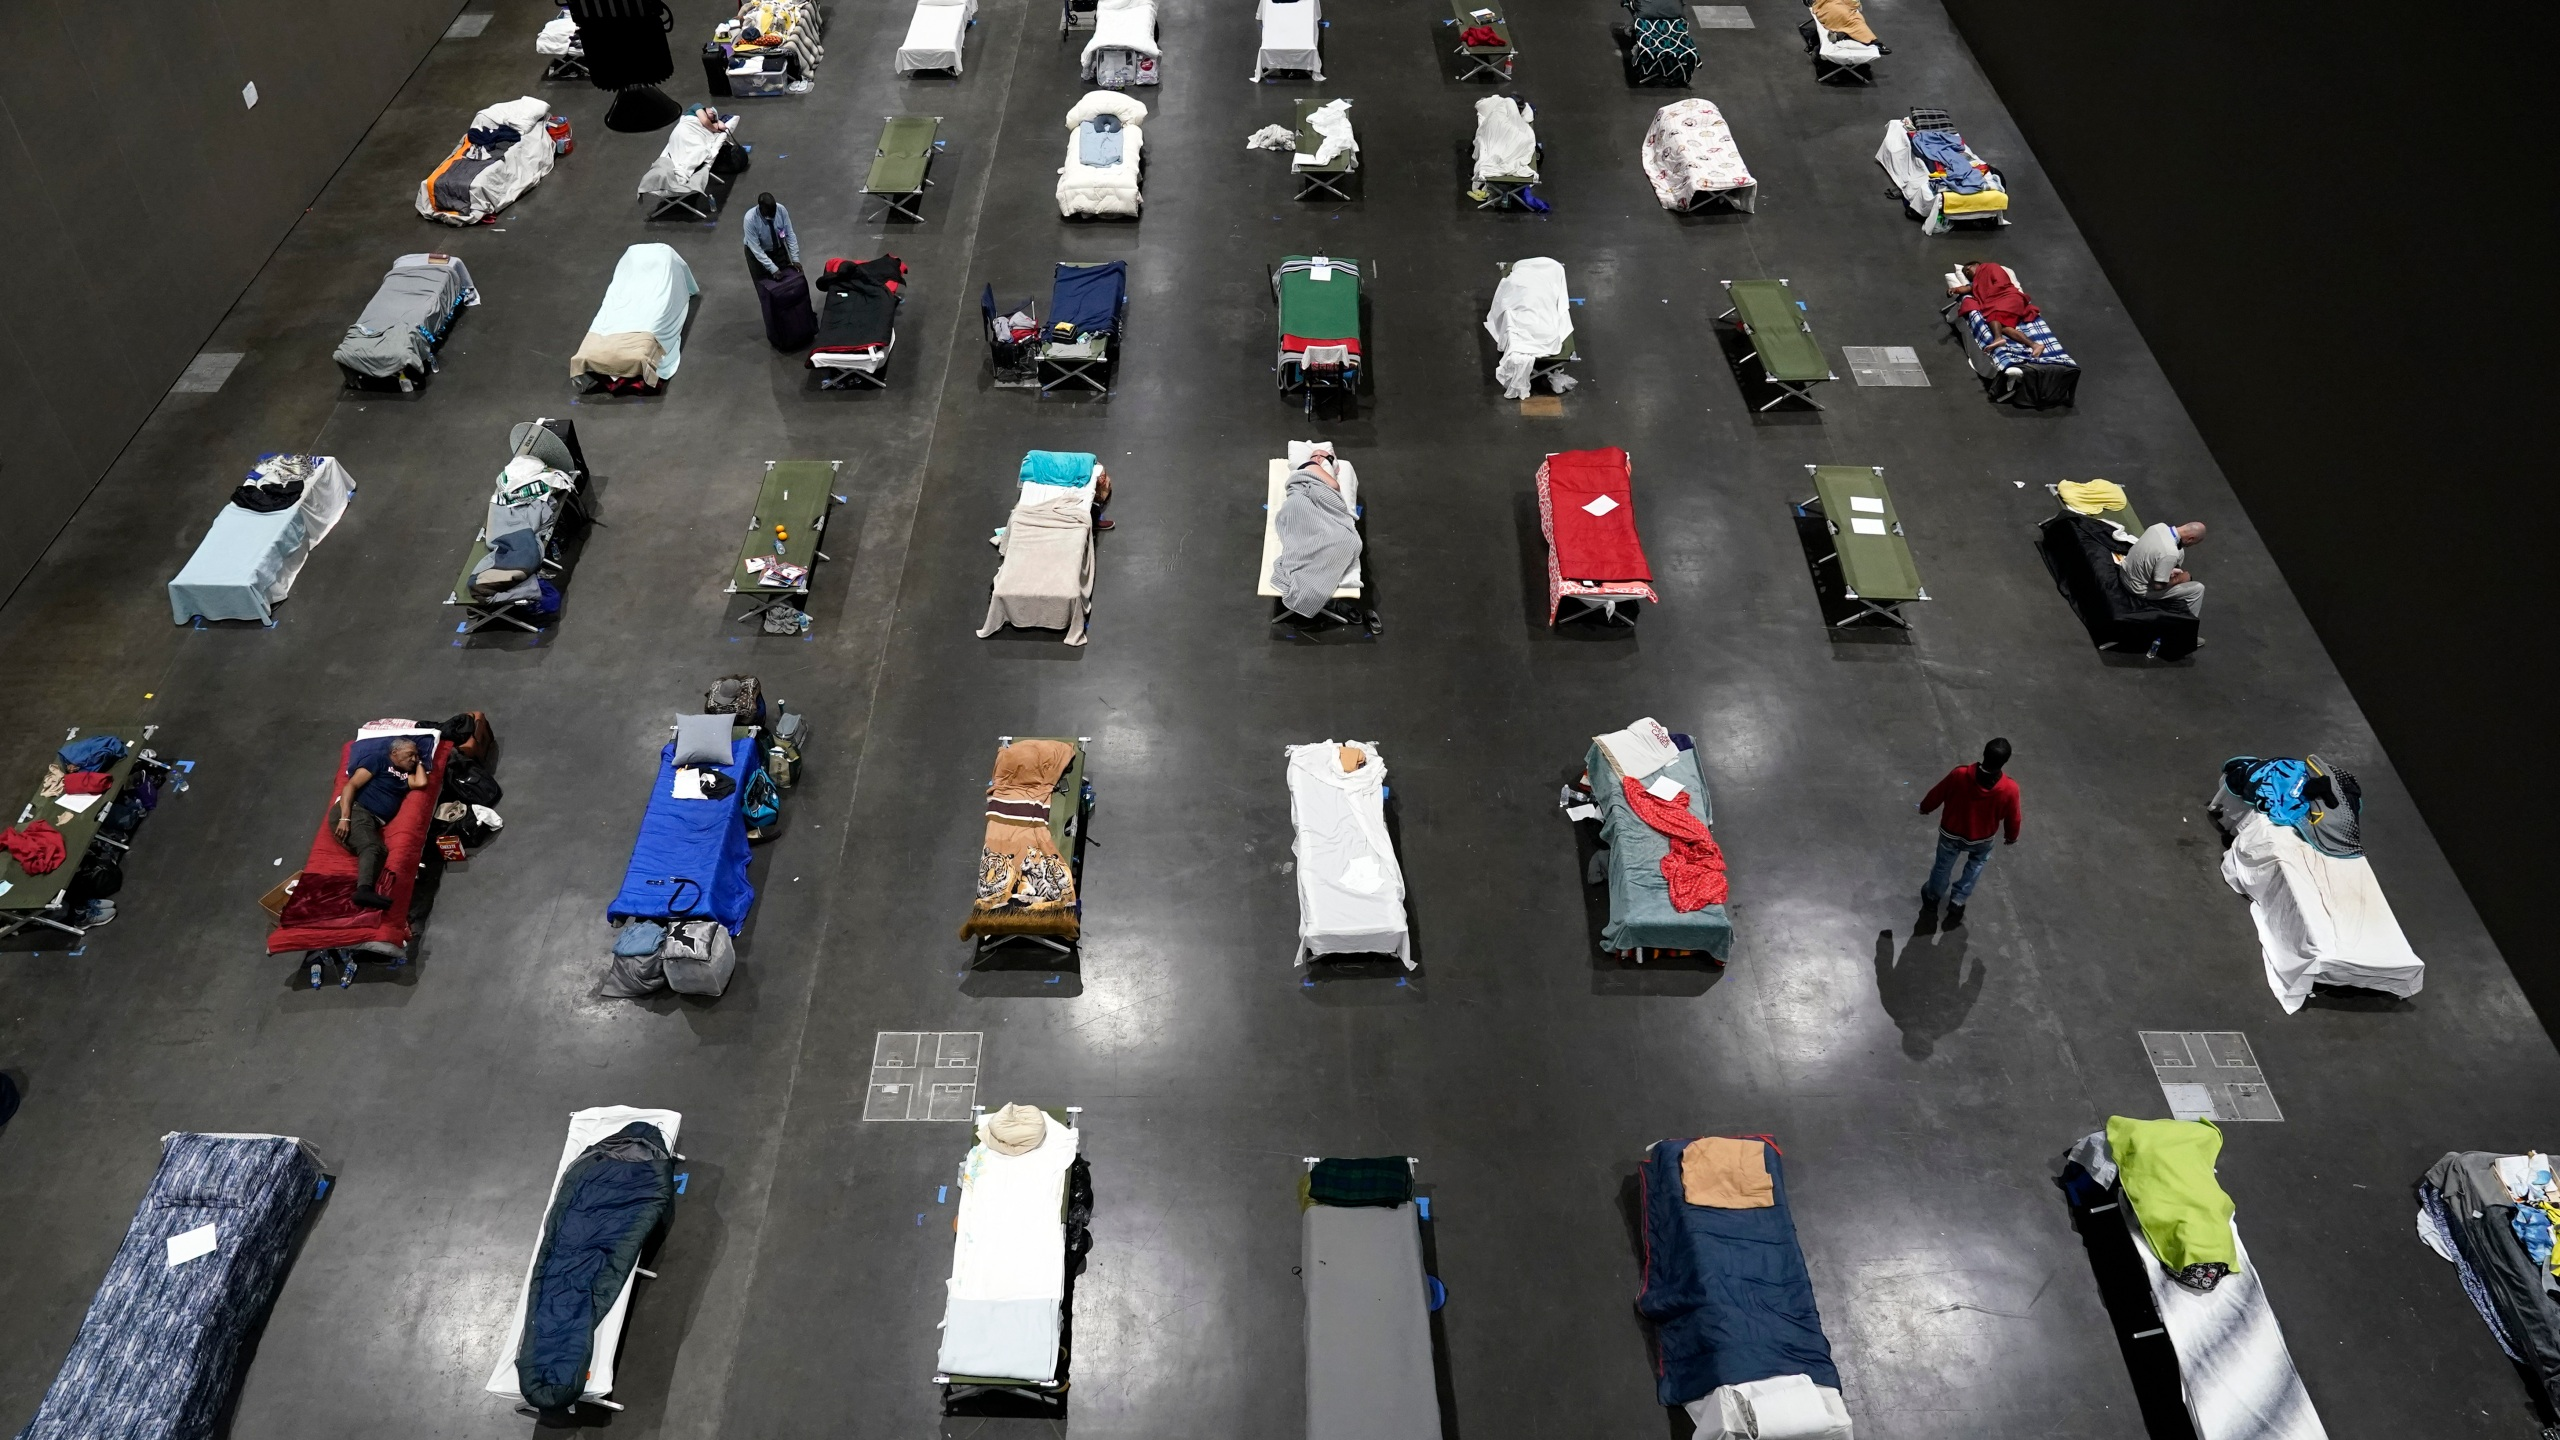 Beds fill a homeless shelter inside the San Diego Convention Center on Aug. 11, 2020, in San Diego. (AP Photo/Gregory Bull)